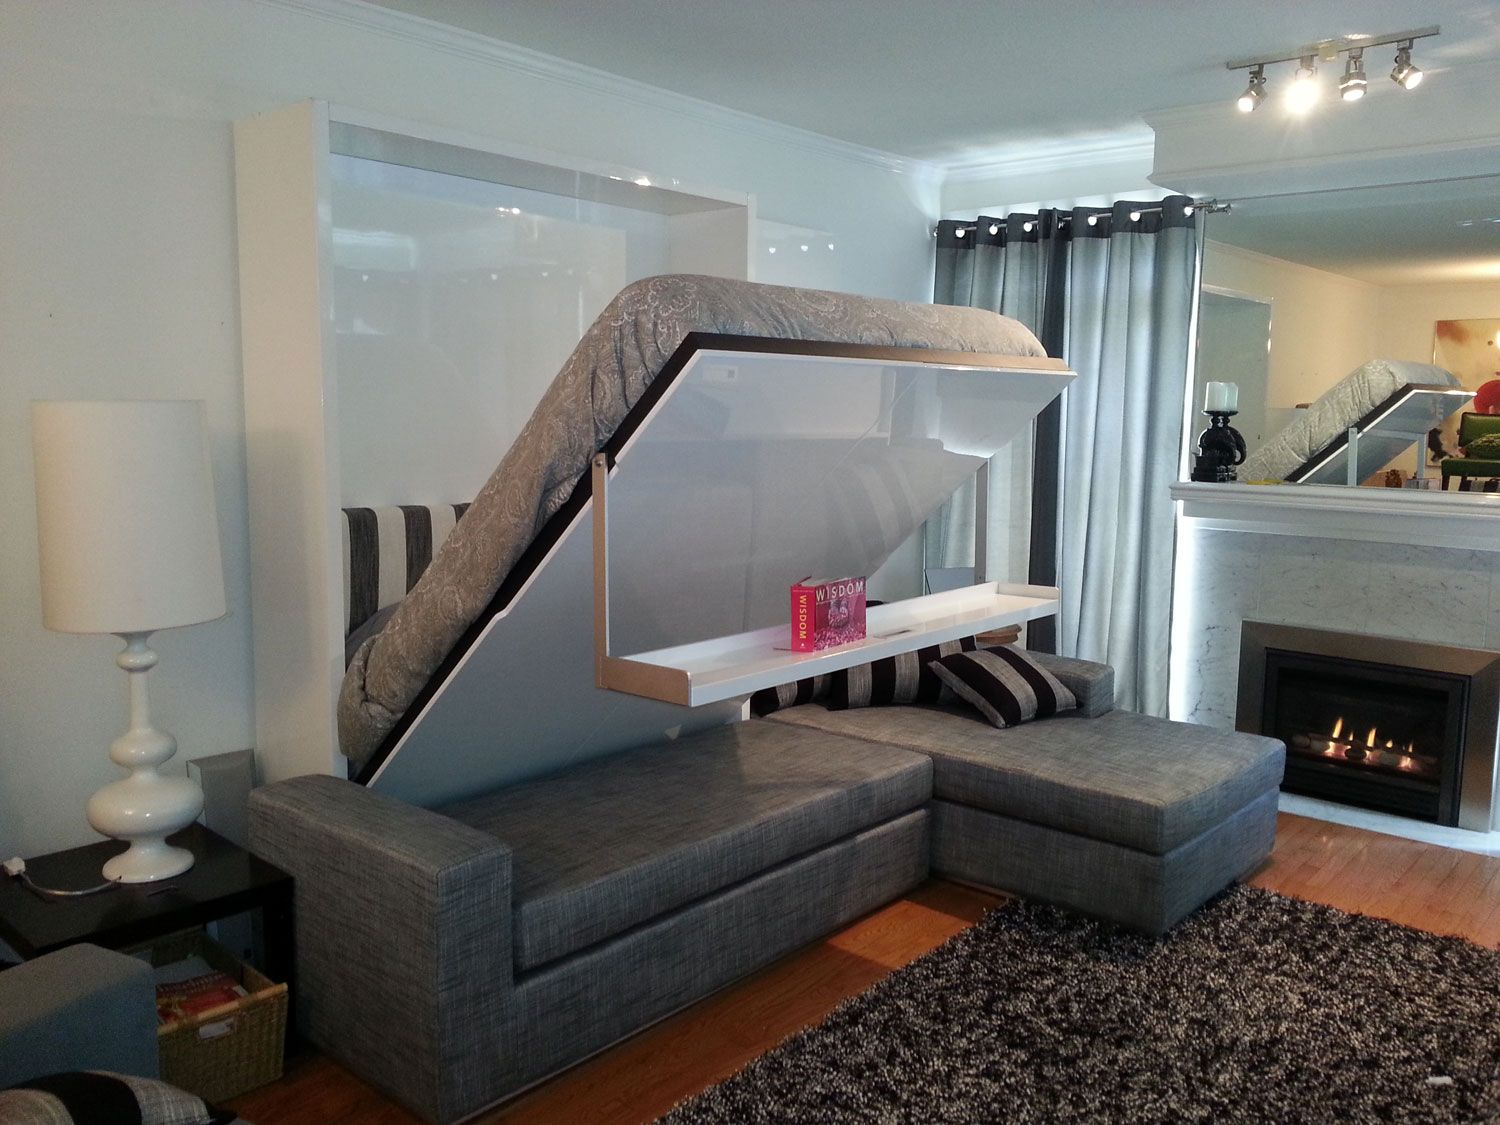 26 Top Collection Bed That Folds Into Wall Murphy Bed Sofa Murphy Bed Ikea Murphy Bed Diy